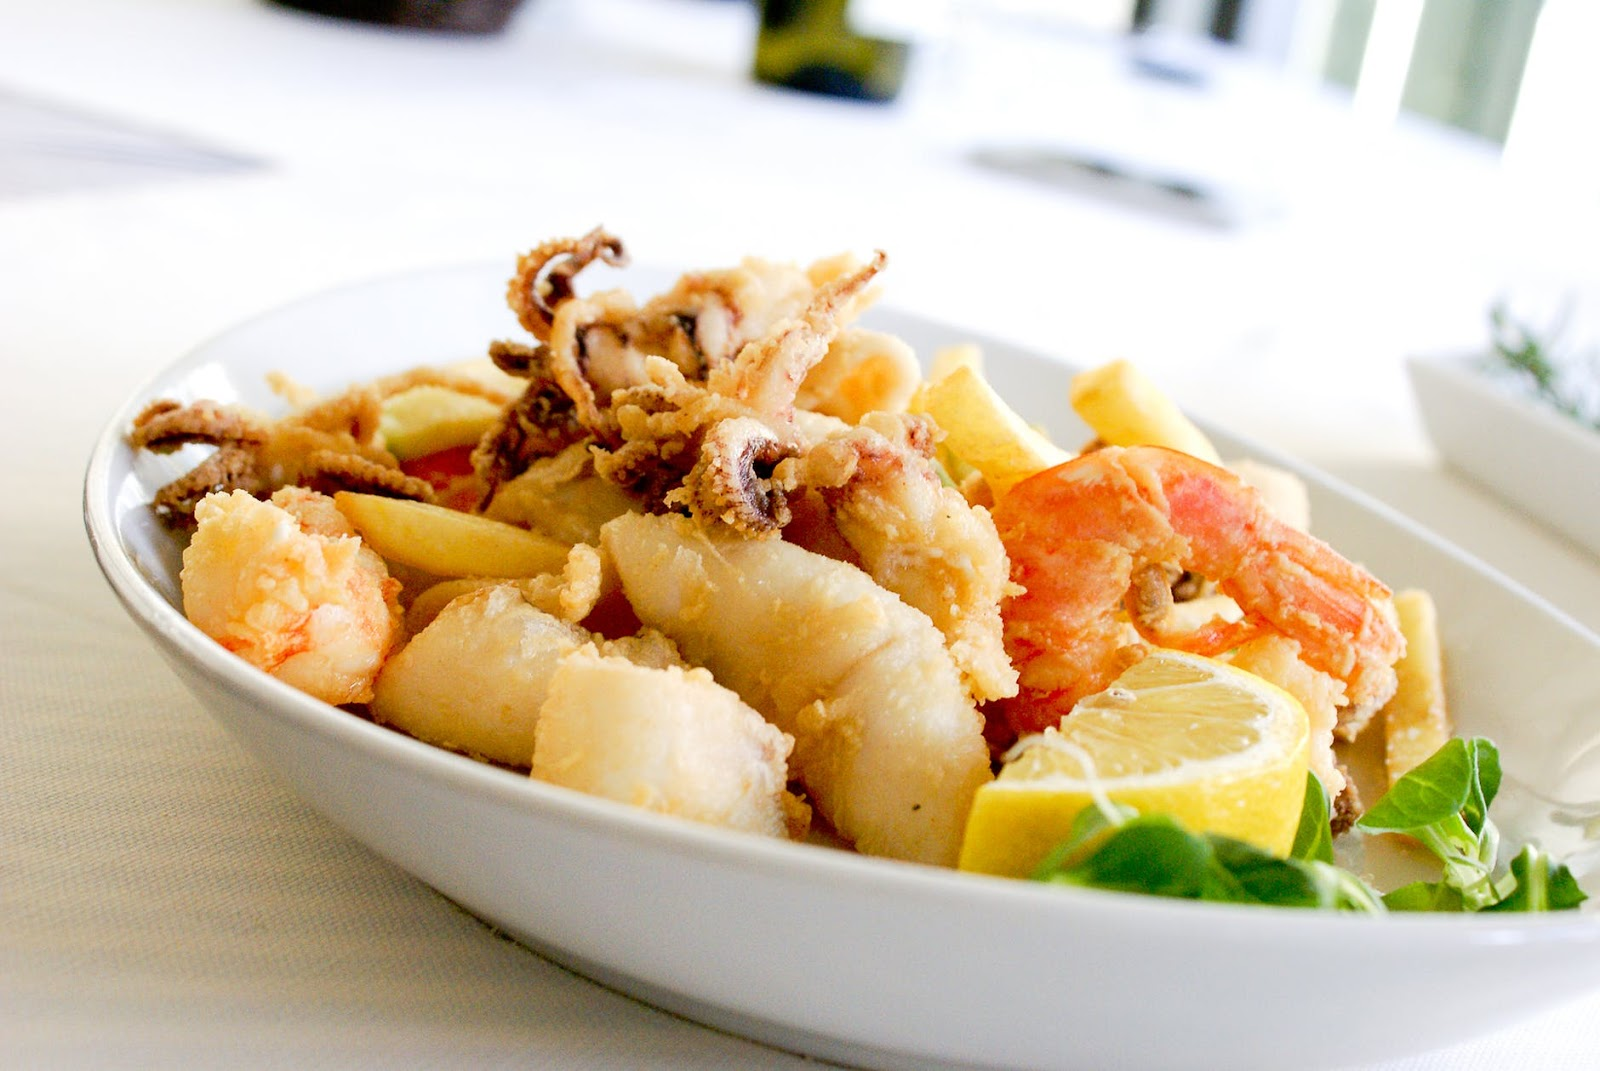 seafood dish with calamari and shrimp